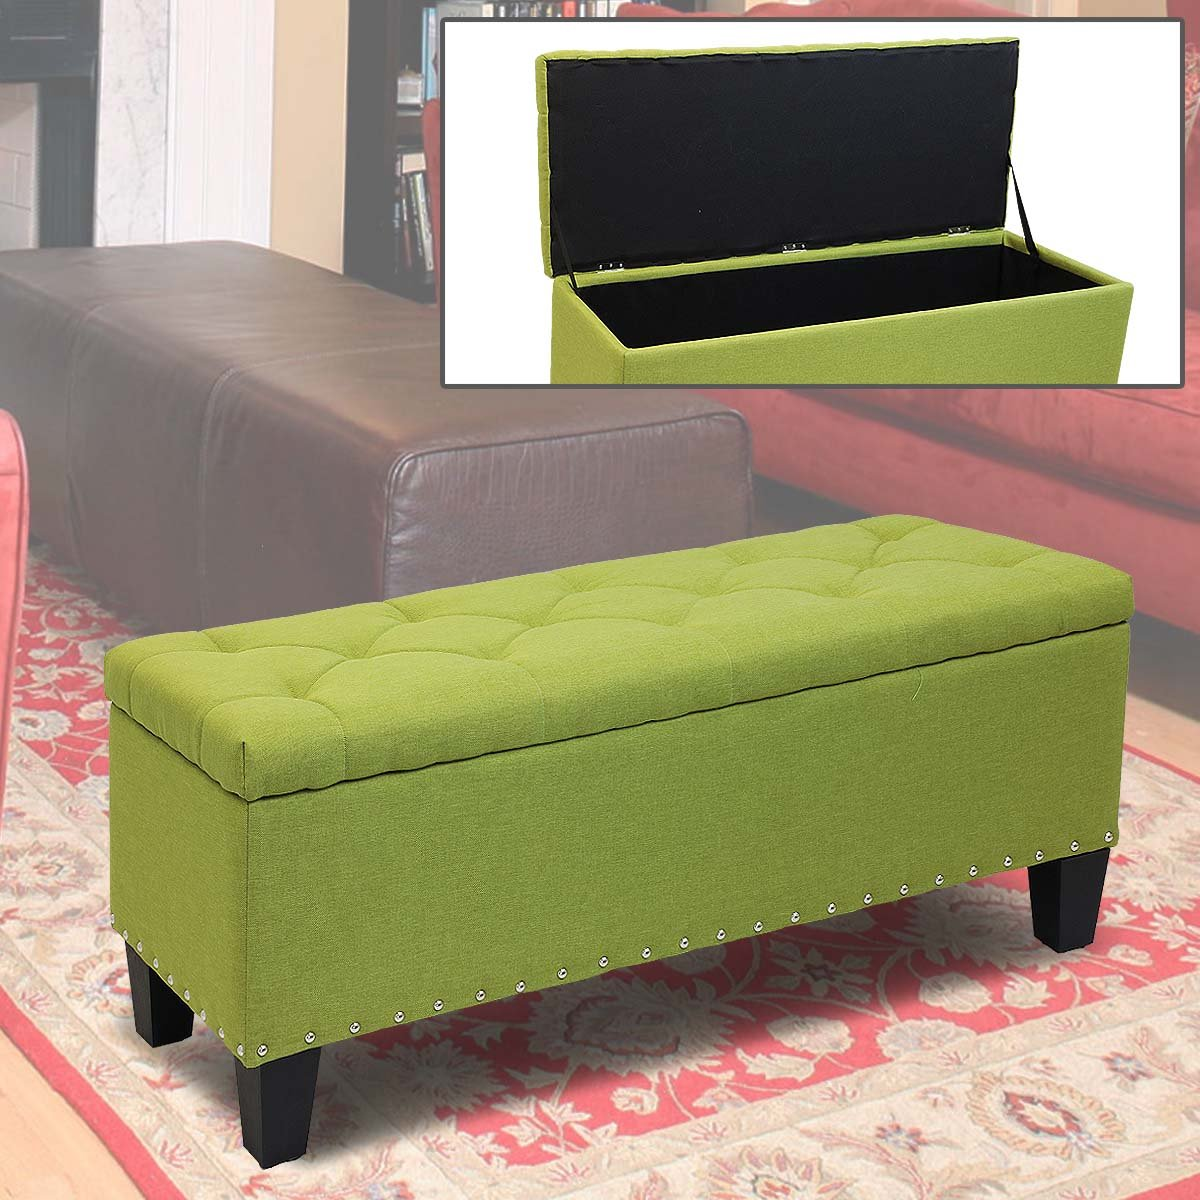 Magshion Rectangular Storage Ottoman Bench Tufted Footrest Lift Top Pouffe Ottoman, Coffee Table, Seat, Foot Rest, and more (42'', Linen Olive) by Magshion (Image #6)